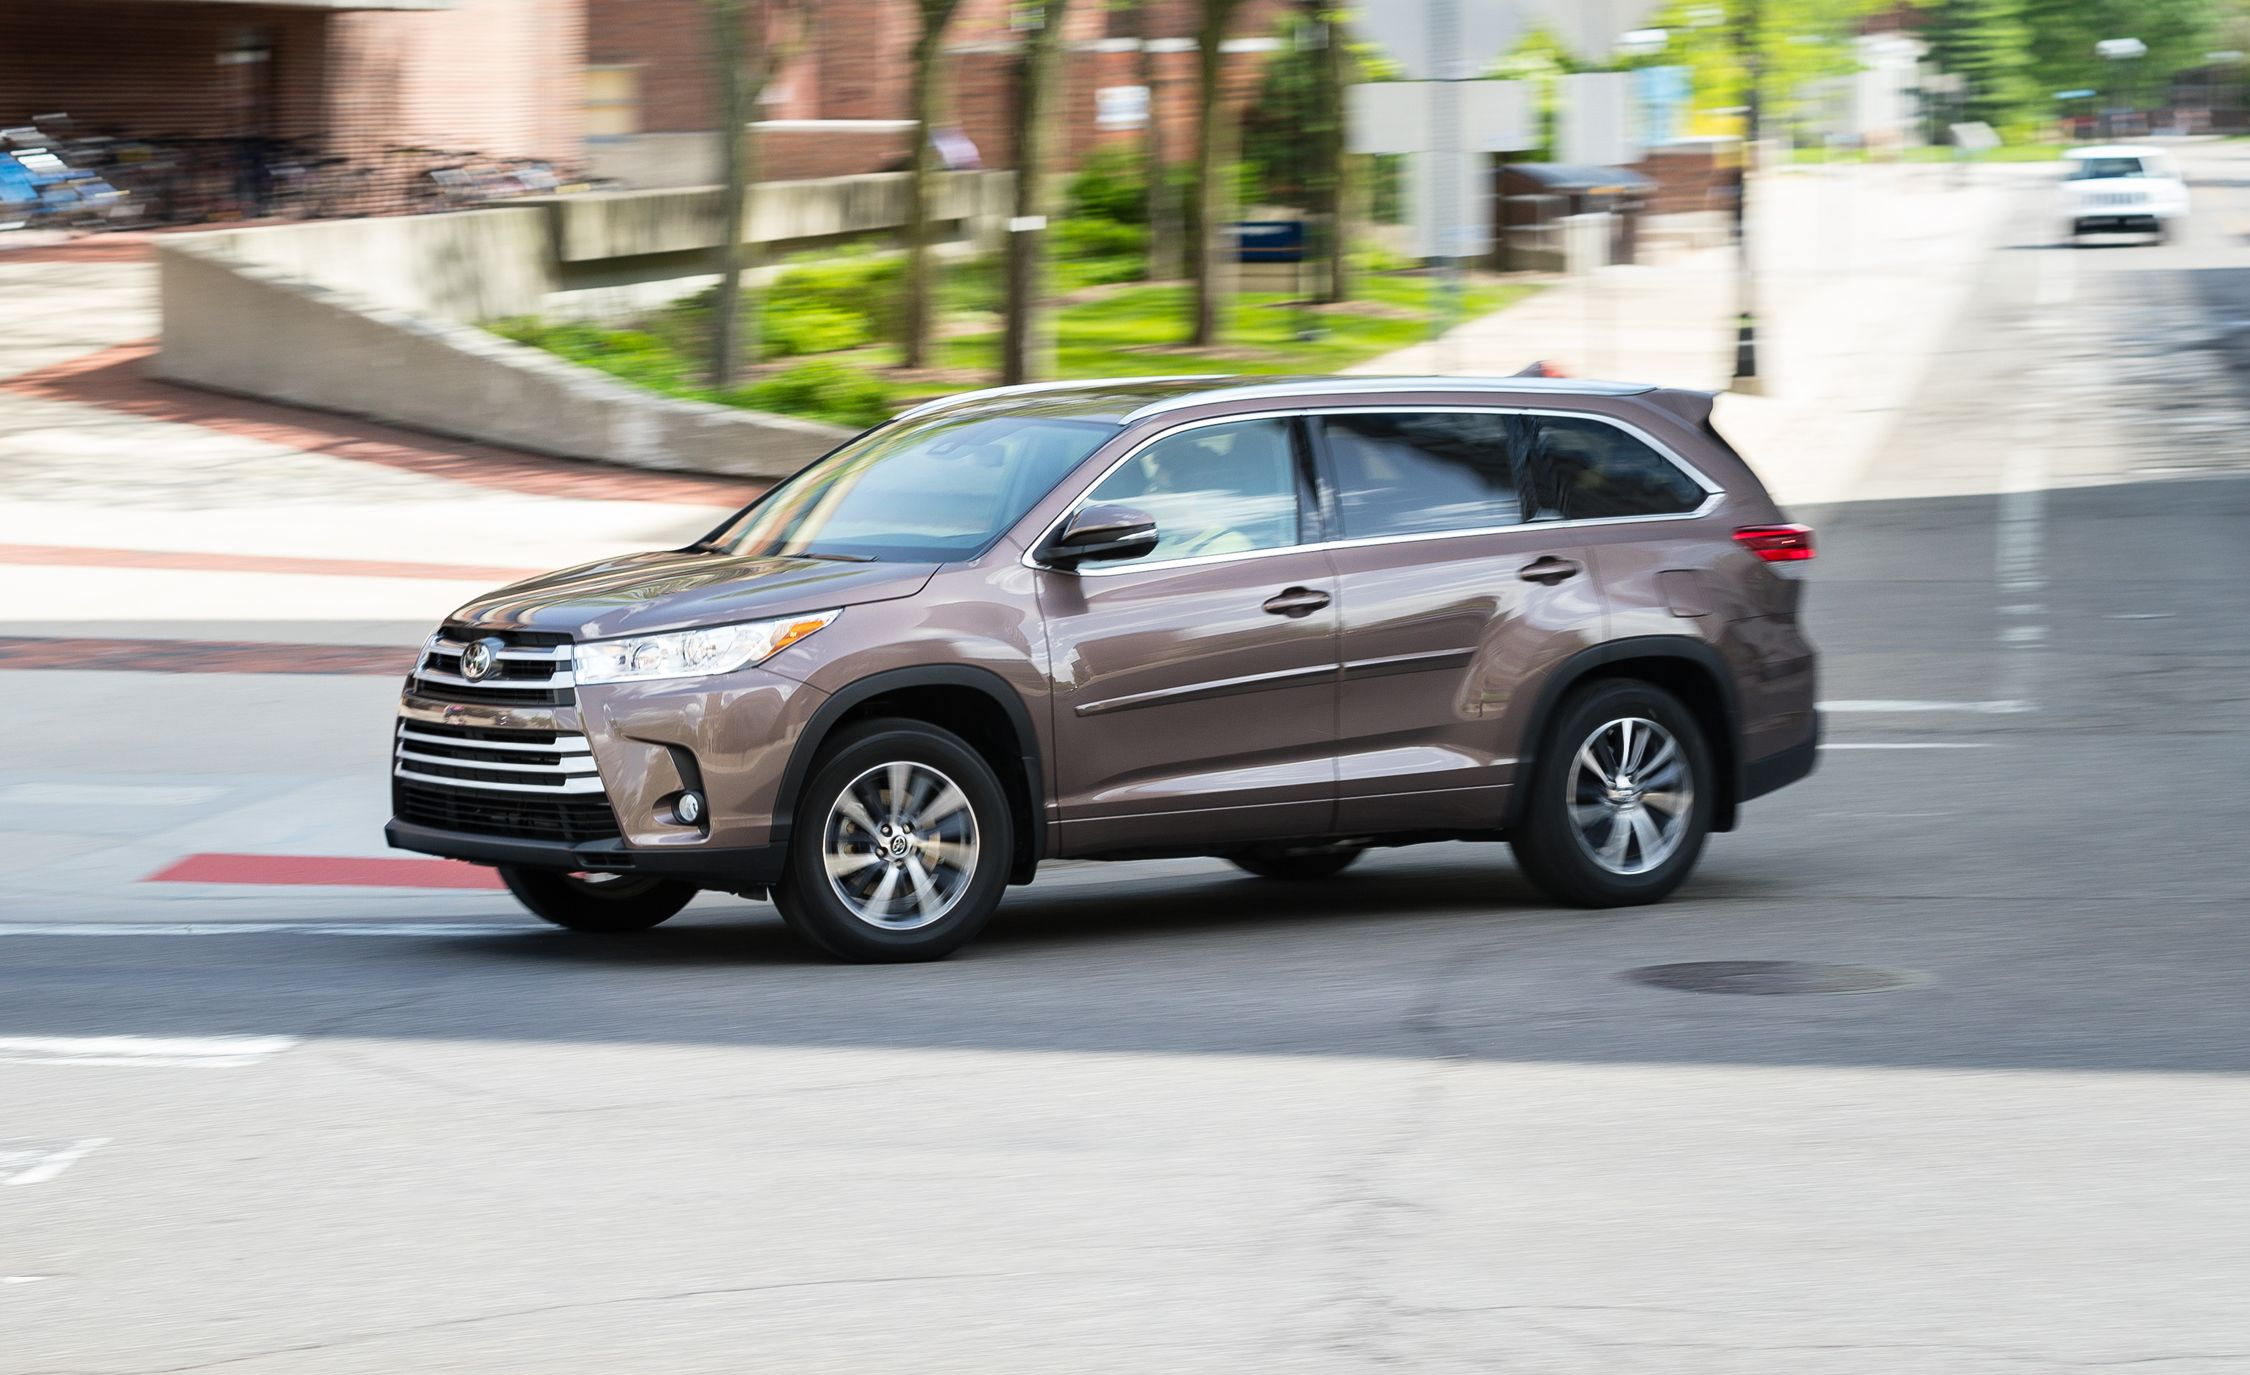 Best Midsize Suv 2017 >> Toyota Highlander Reviews | Toyota Highlander Price, Photos, and Specs | Car and Driver